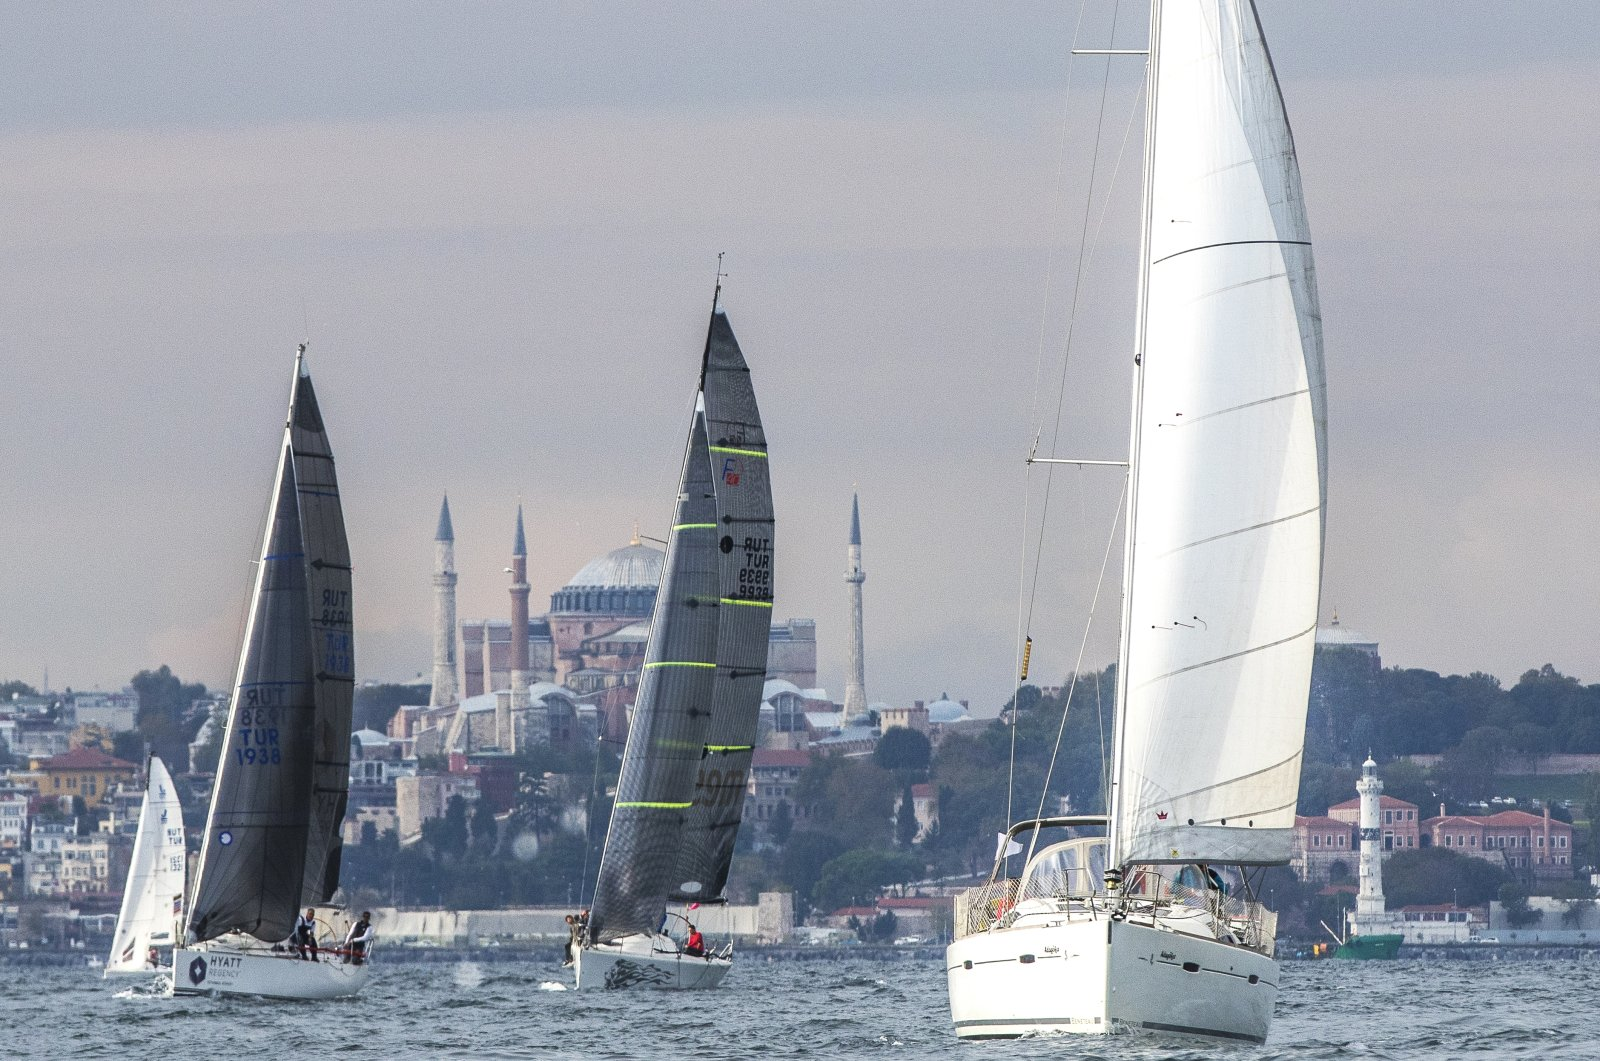 Boats take part in the 1st Presidential International Yacht Races, Istanbul, Turkey, Oct. 29, 2020. (Courtesy of sailturkey.racing)